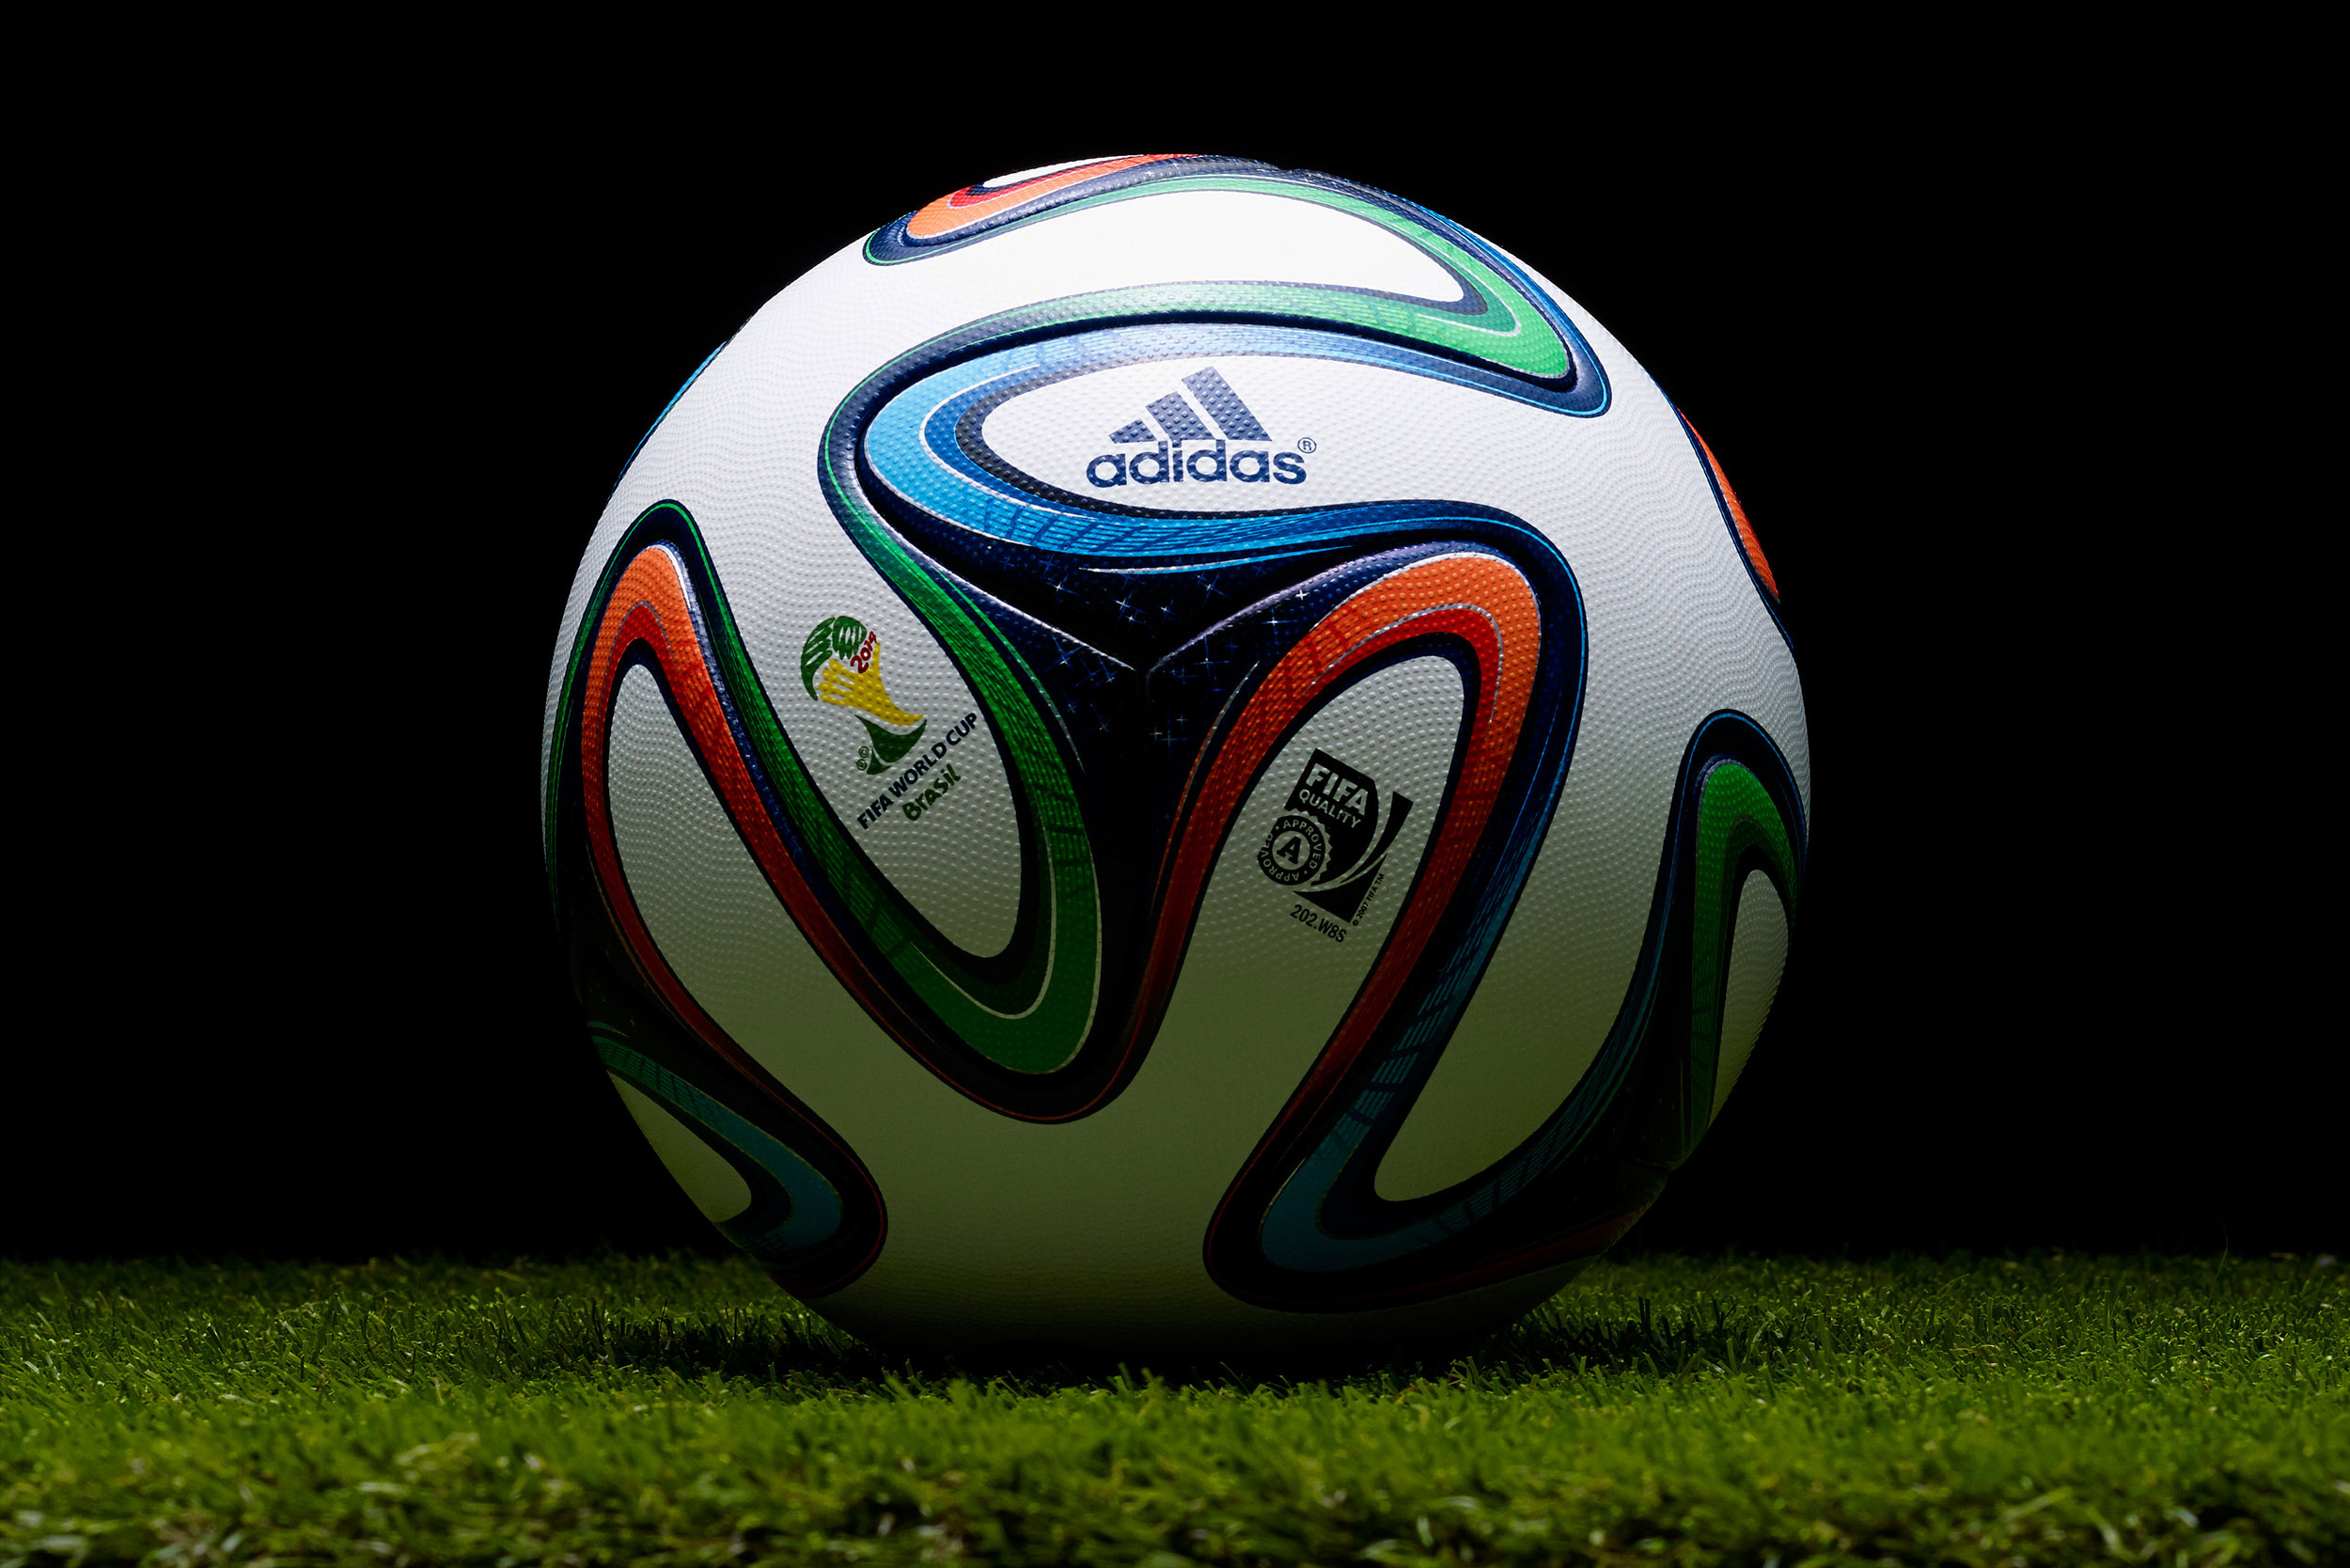 adidas-brazuca-ball-for-sale-wallpaper-wp3402179